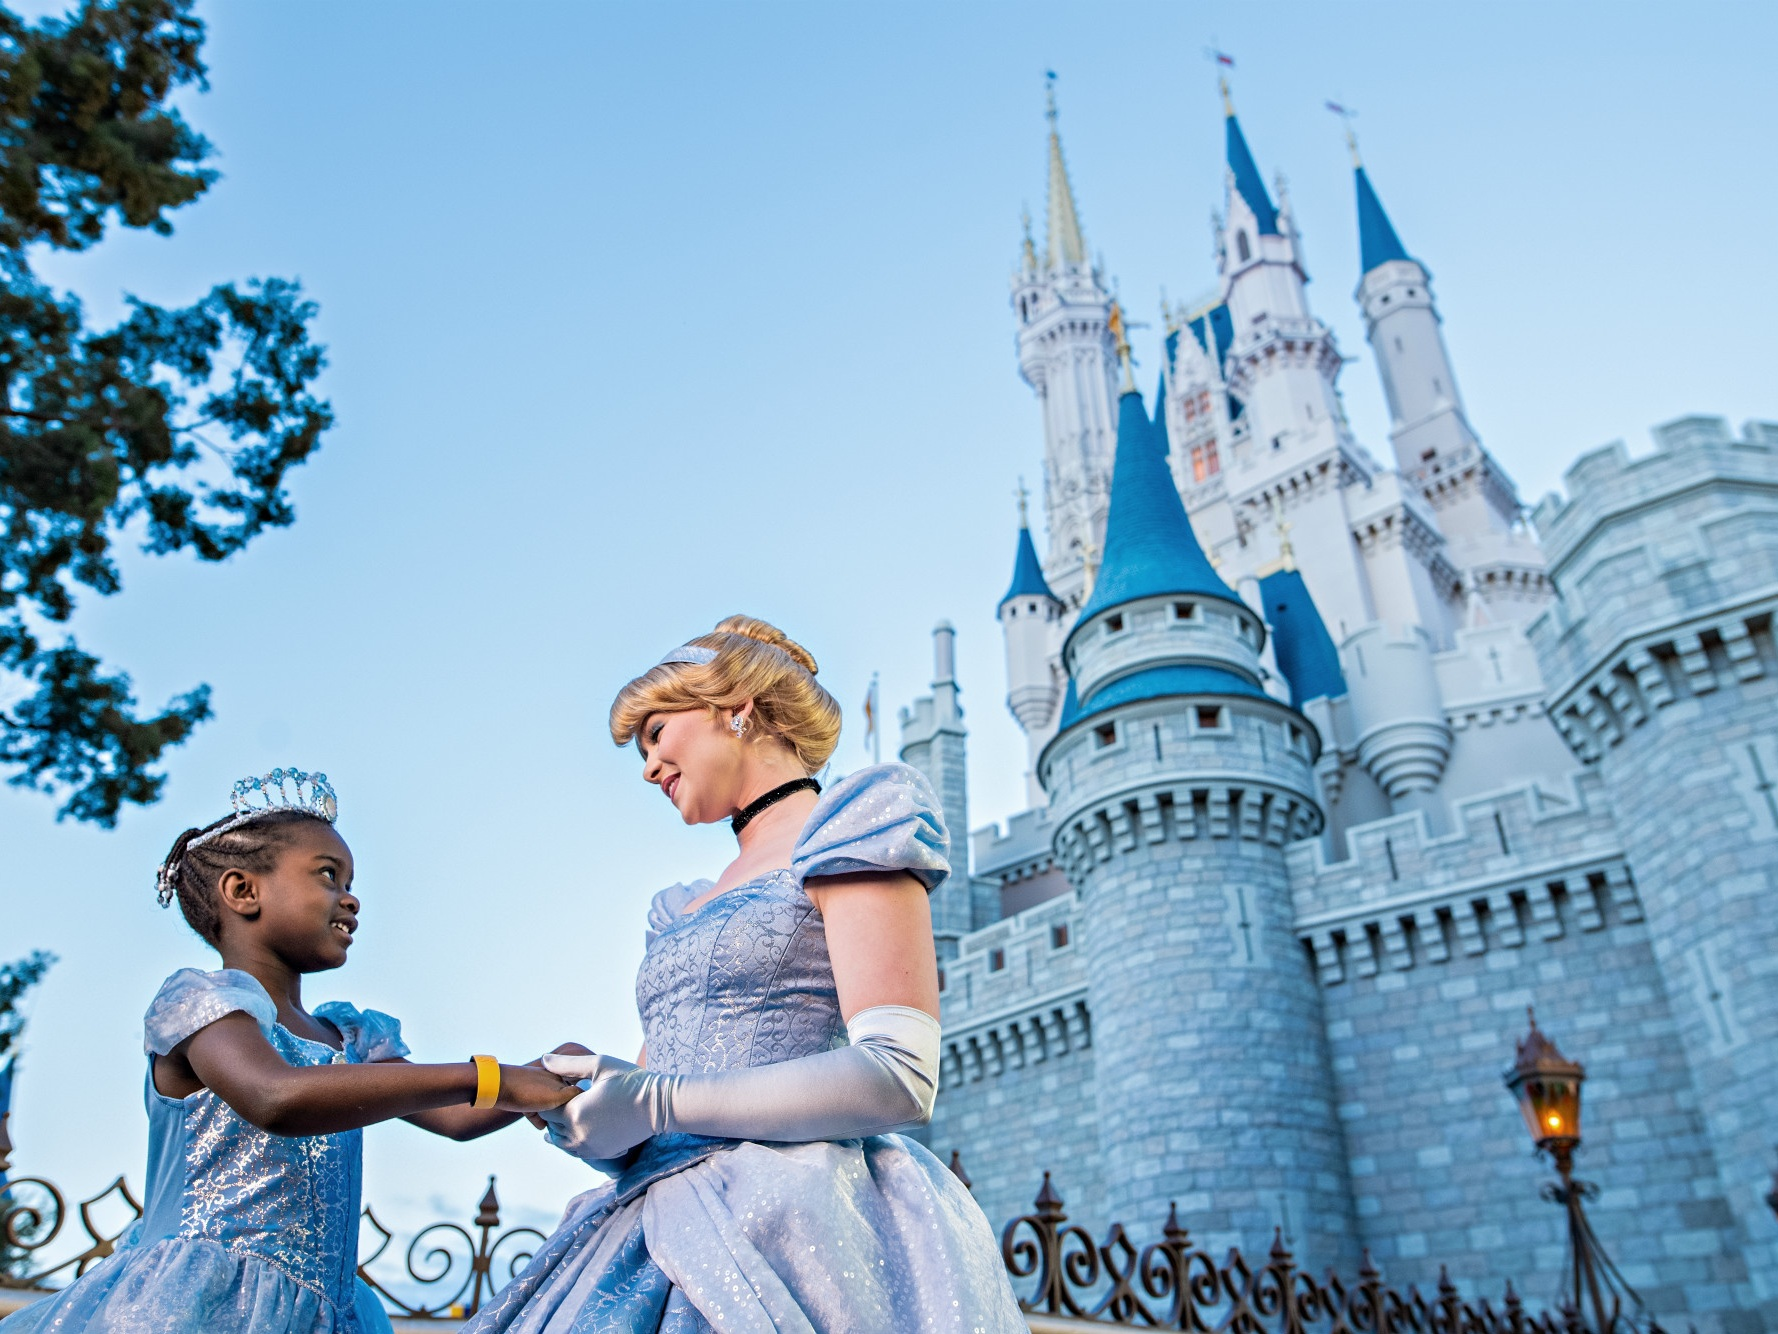 WALT DISNEY WORLd Resort (Florida) - Home to four theme parks, two water parks, twenty-seven resort hotels, an entertainment complex and so much more! Make Disney World your next vacation destination.